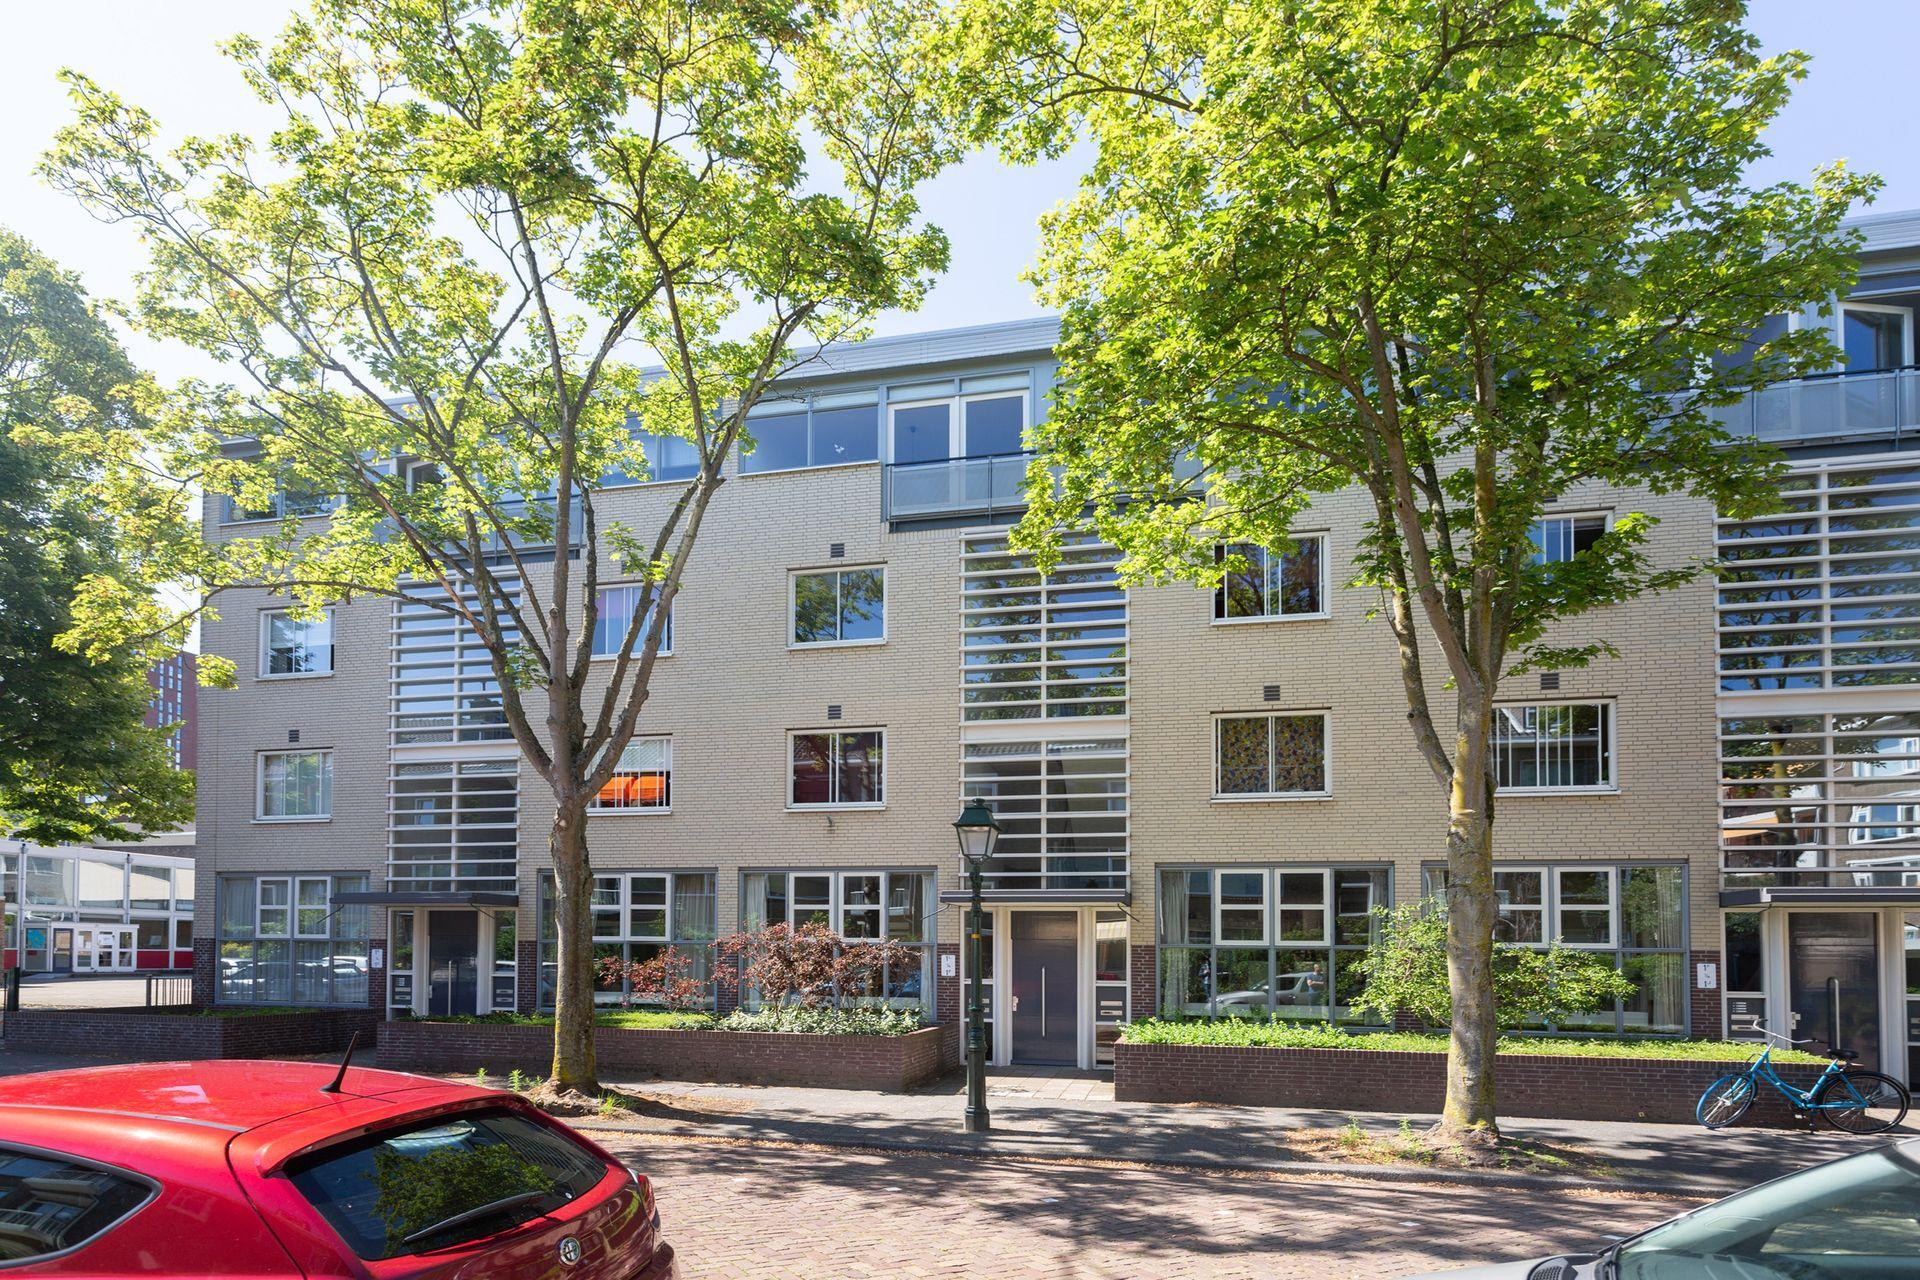 Bekijk de foto van: Amalia van Solmsstraat 1 , 2595 TA in Den haag - The Hague Real Estate Services